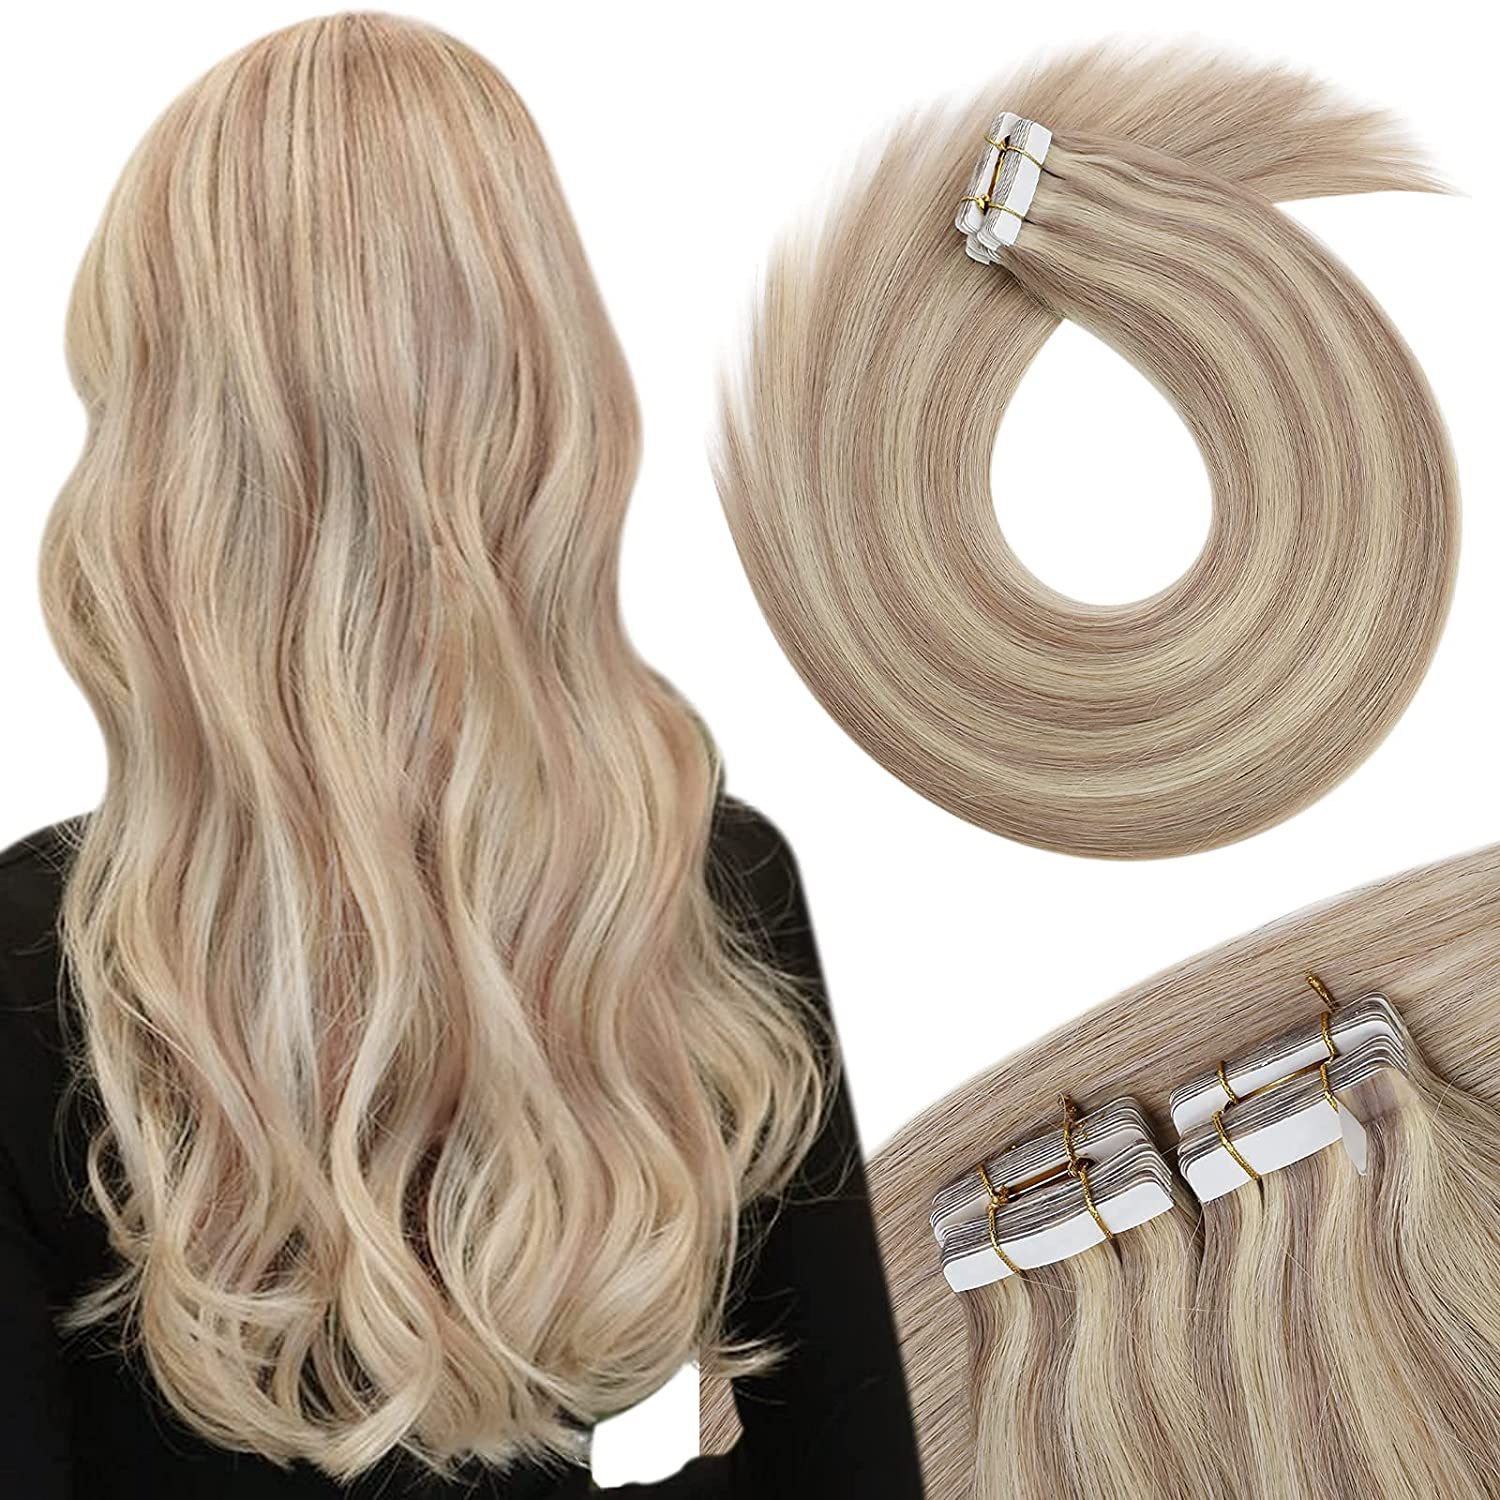 Human Hair Easy-to-use Extensions Cheap sale Tape in Blonde Bleach 22inch Blond